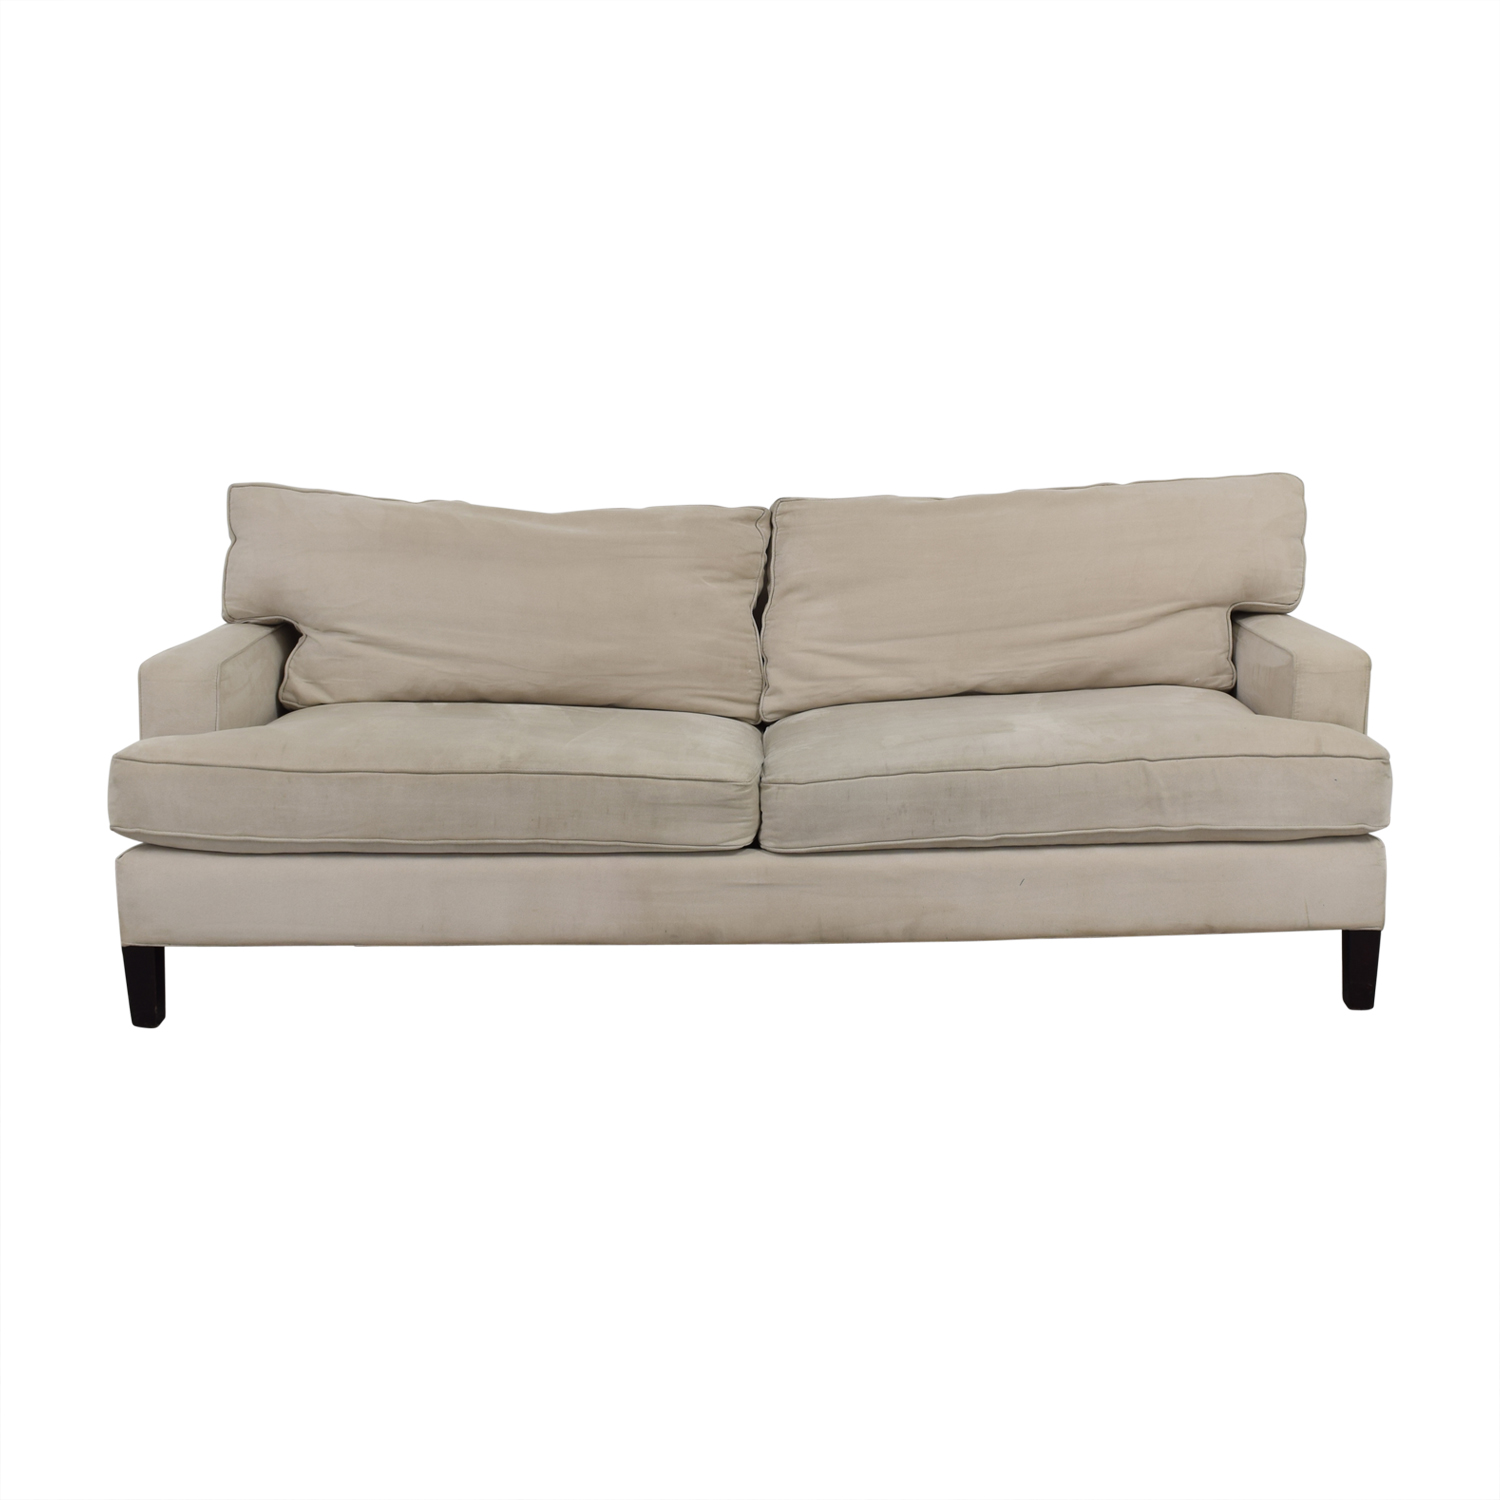 Room Board Hawthorne Couch Off White Second